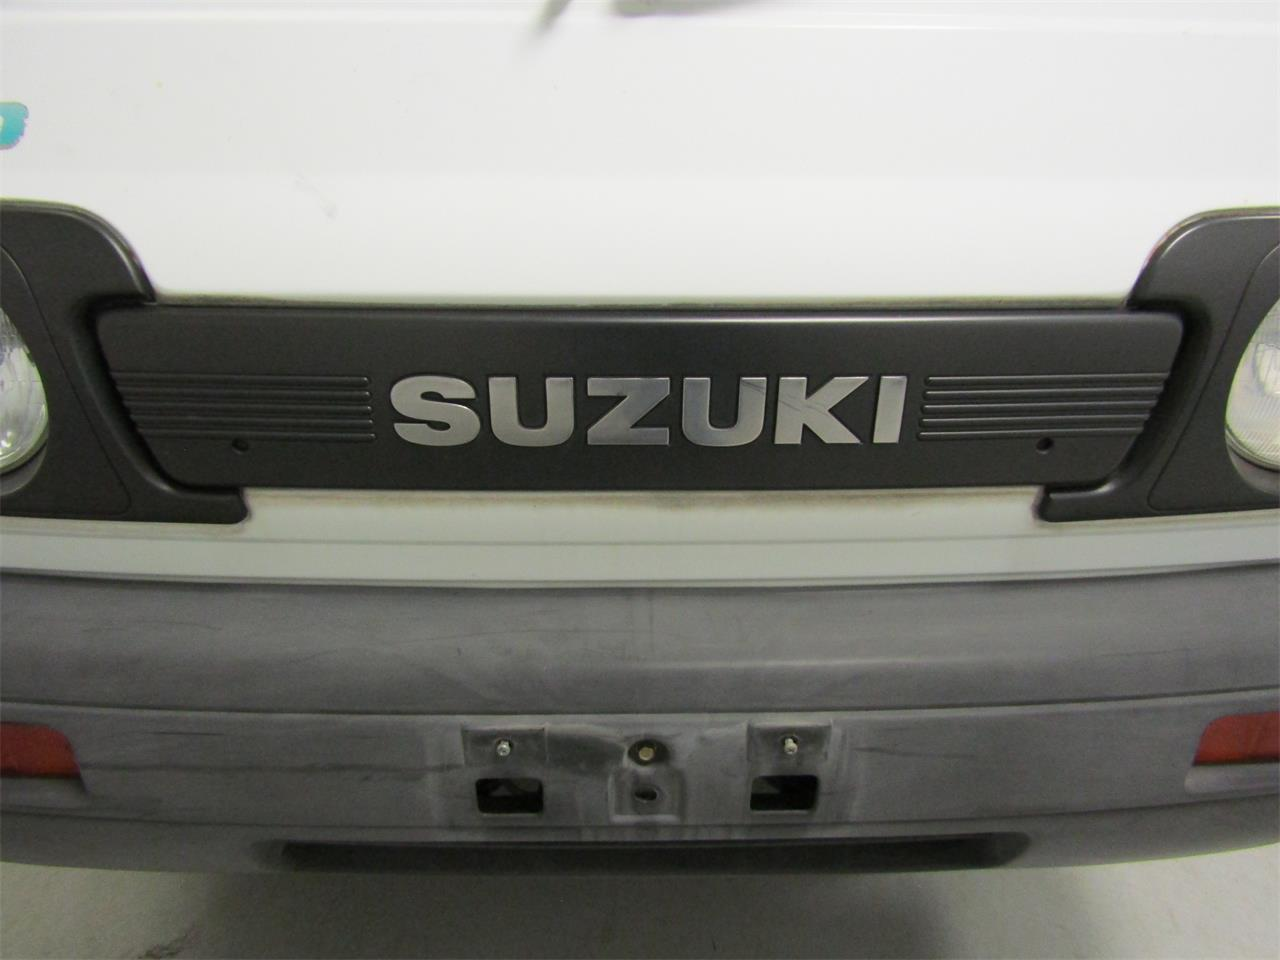 1991 Suzuki Carry for sale in Christiansburg, VA – photo 47